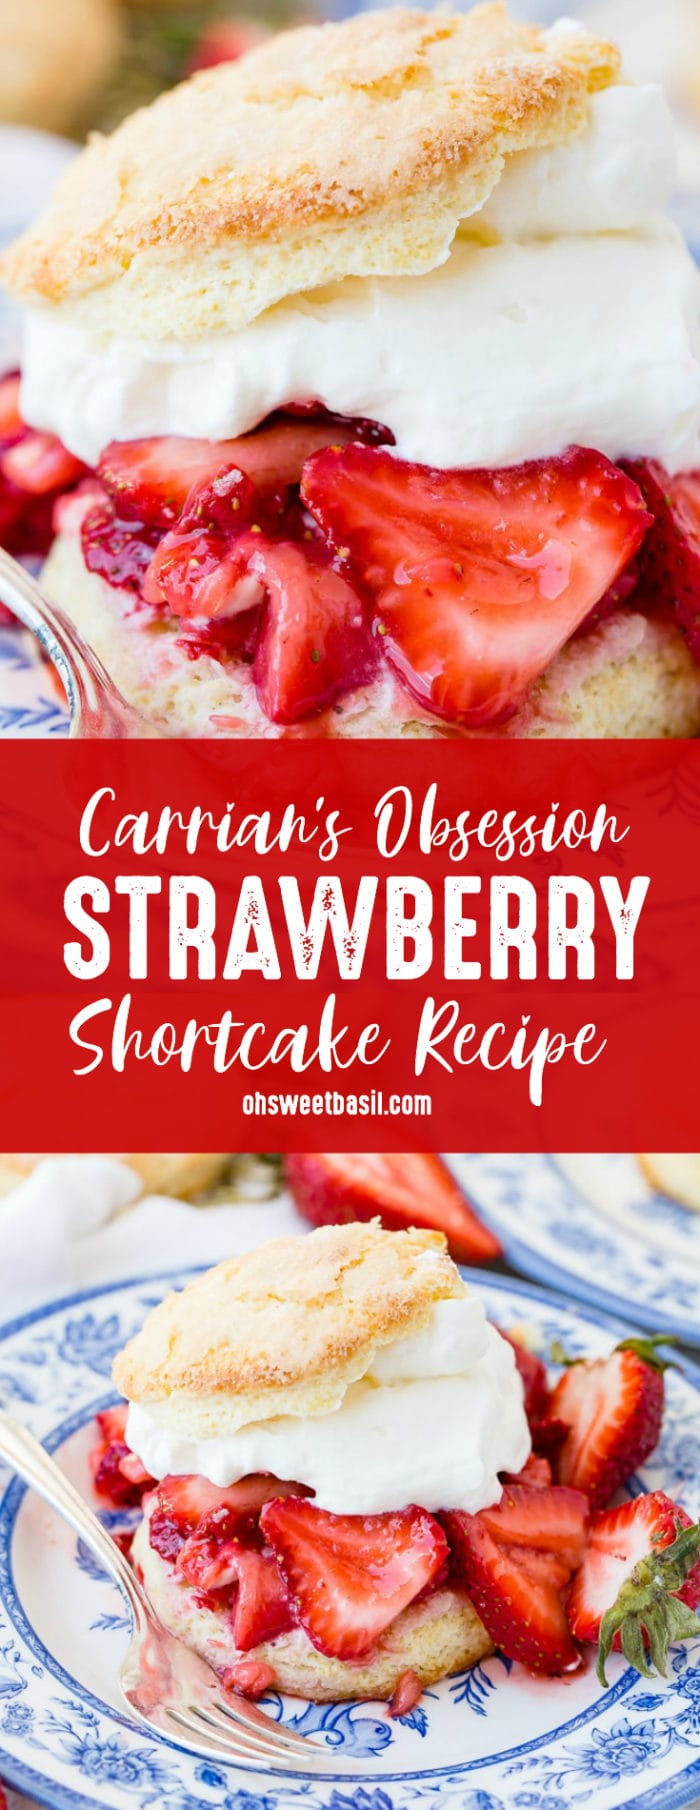 A homemade strawberry shortcake recipe on a blue and white plate with a sweet biscuit, juicy strawberries, and whipped cream.